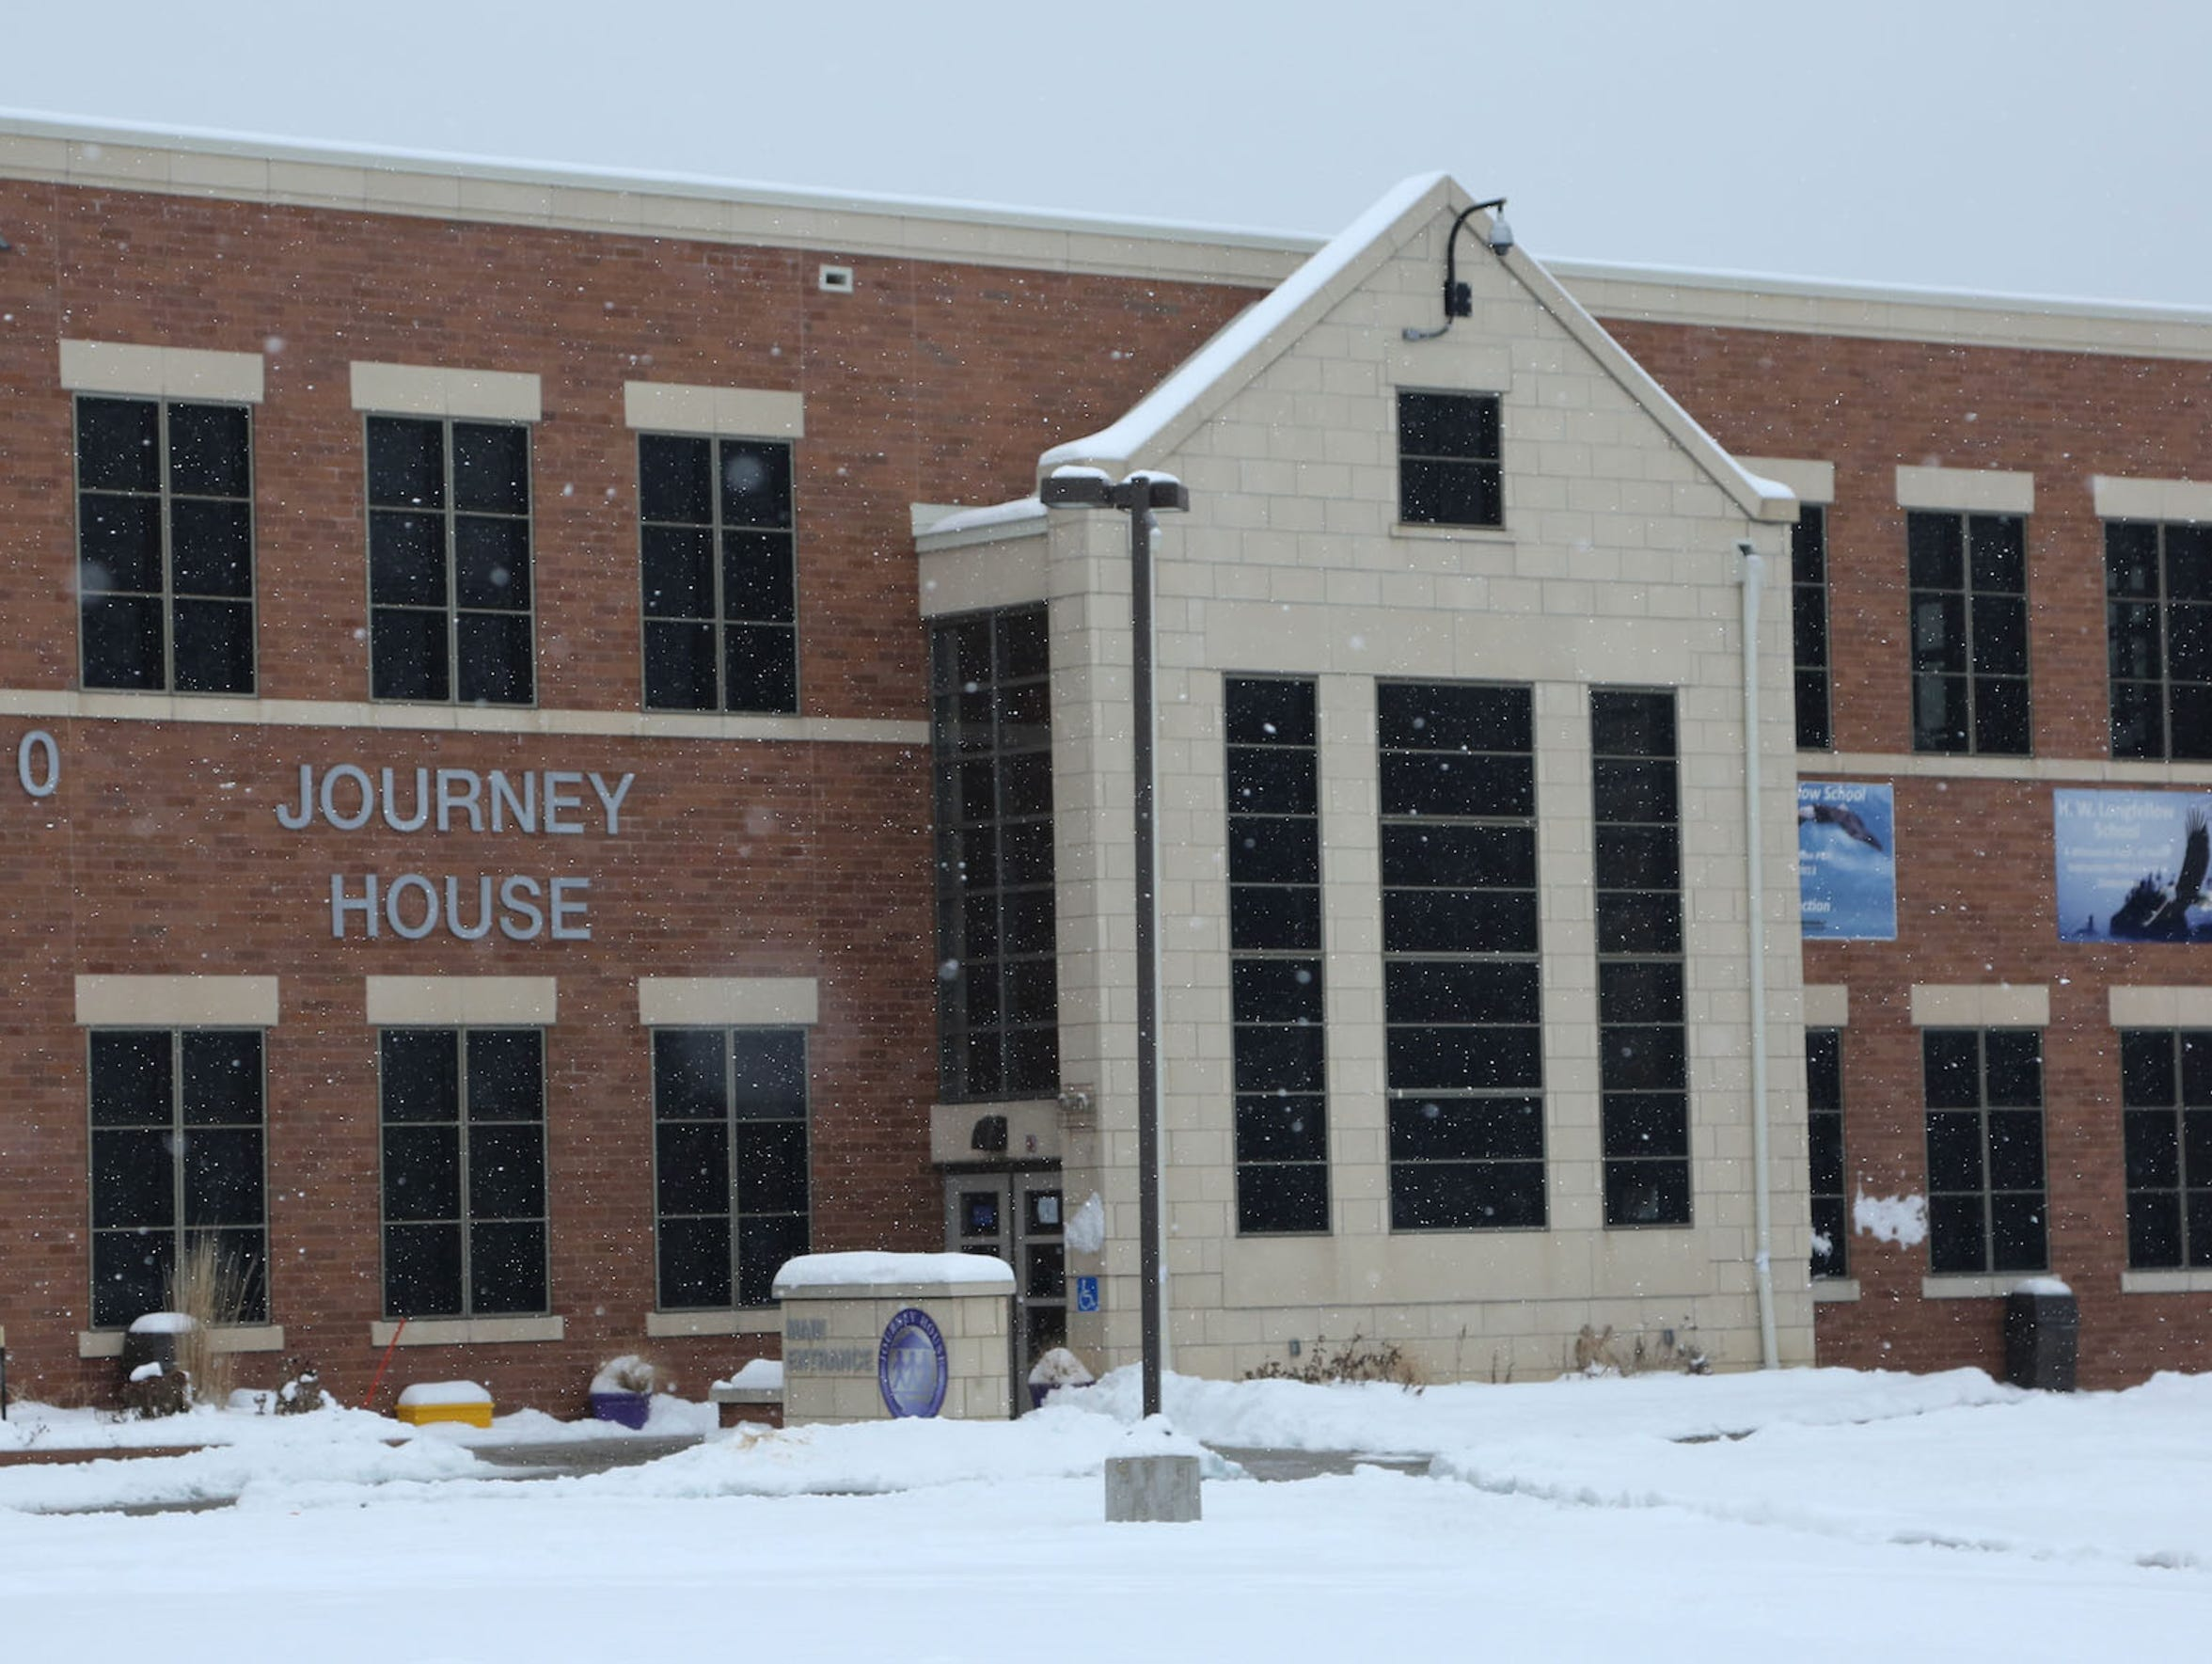 Journey House is a force for good on the south side,